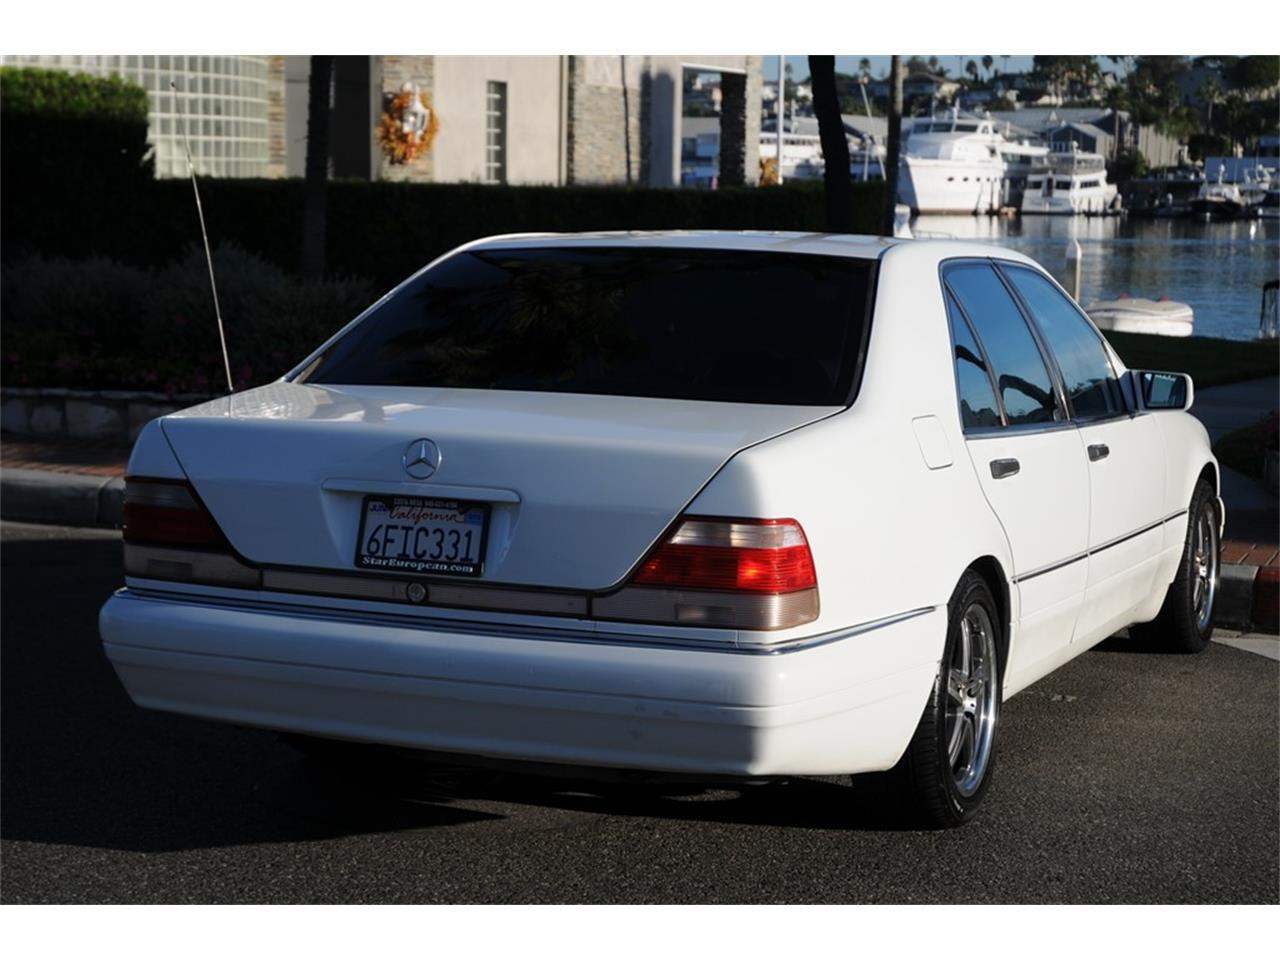 Large Picture of 1999 Mercedes-Benz S320 - $3,990.00 Offered by Star European Inc. - OUD9